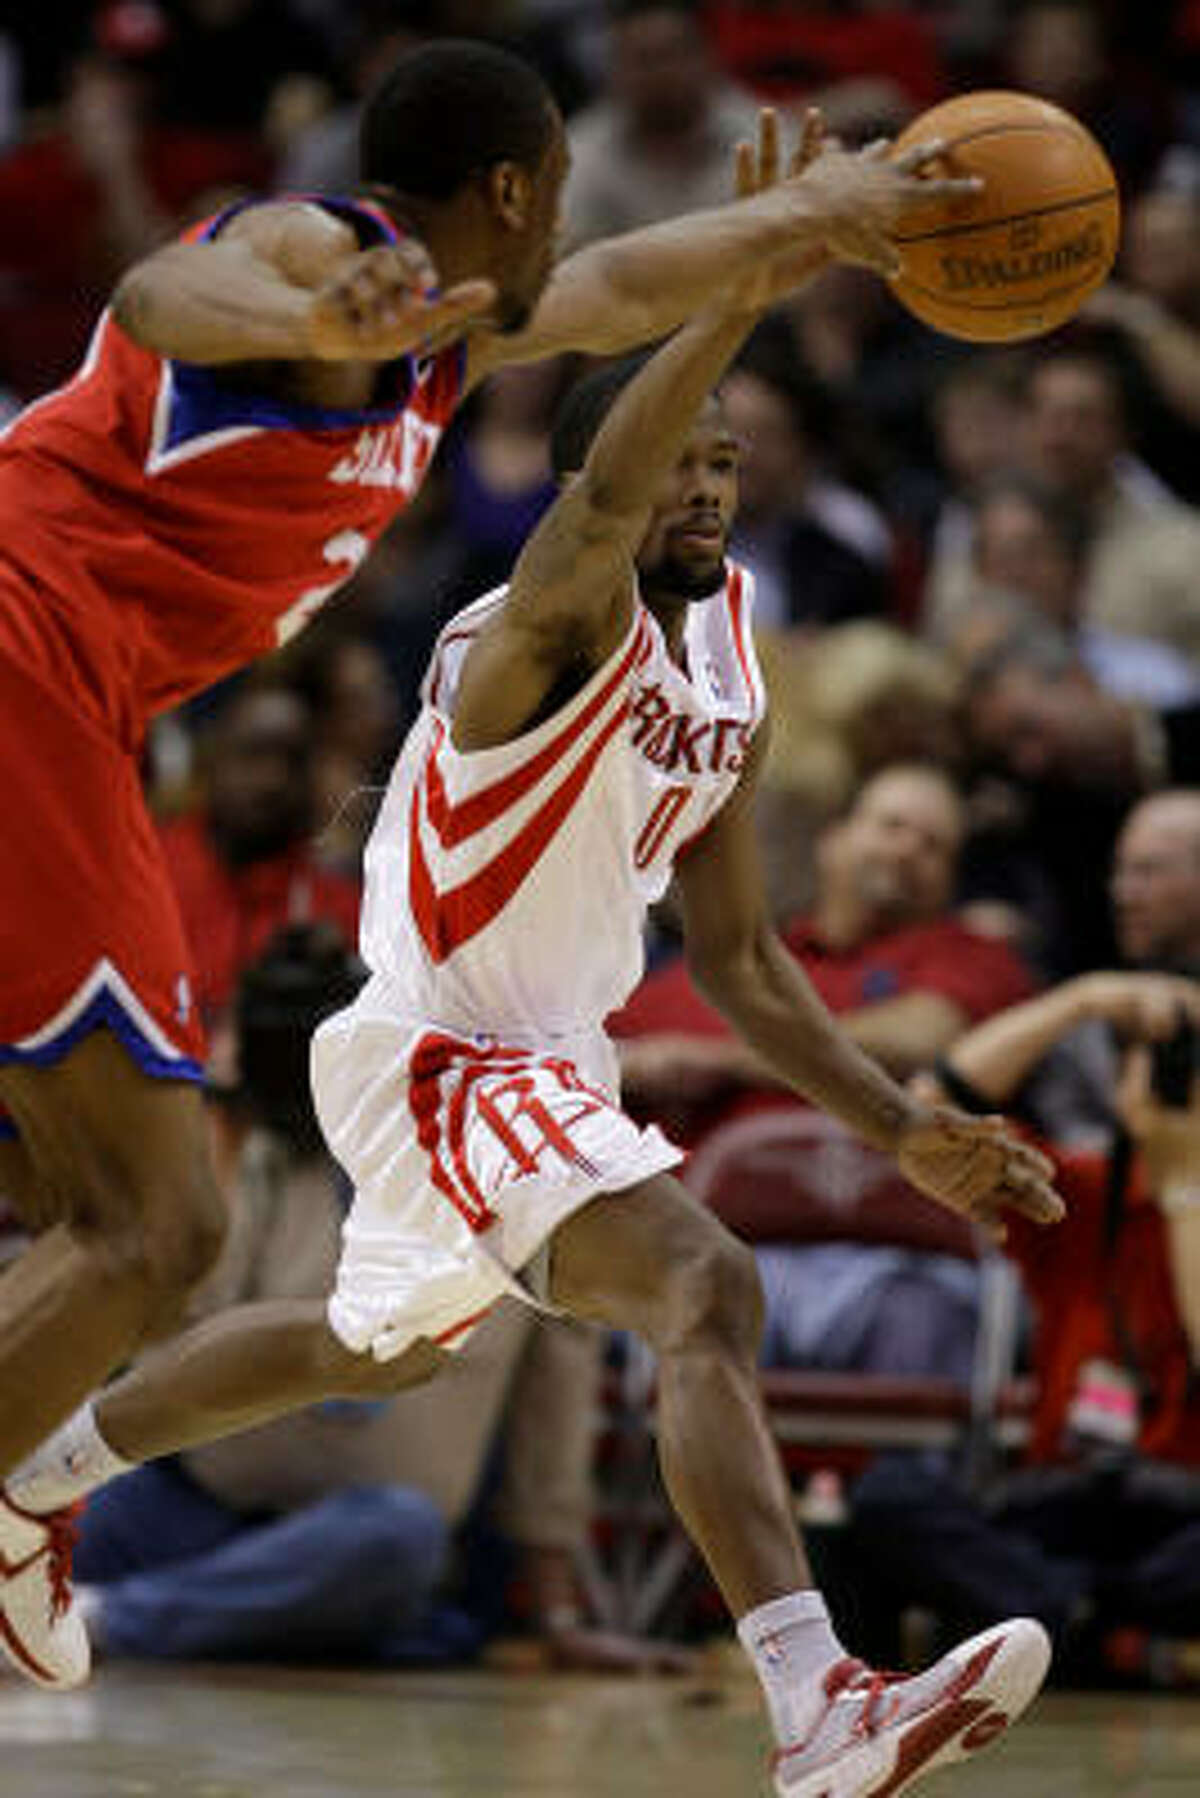 Philadelphia 76ers forward Thaddeus Young, left, and Rockets guard Aaron Brooks chase a loose ball during Saturday's game at Toyota Center. Brooks scored a game-high 34 points, but the Rockets lost 102-95.